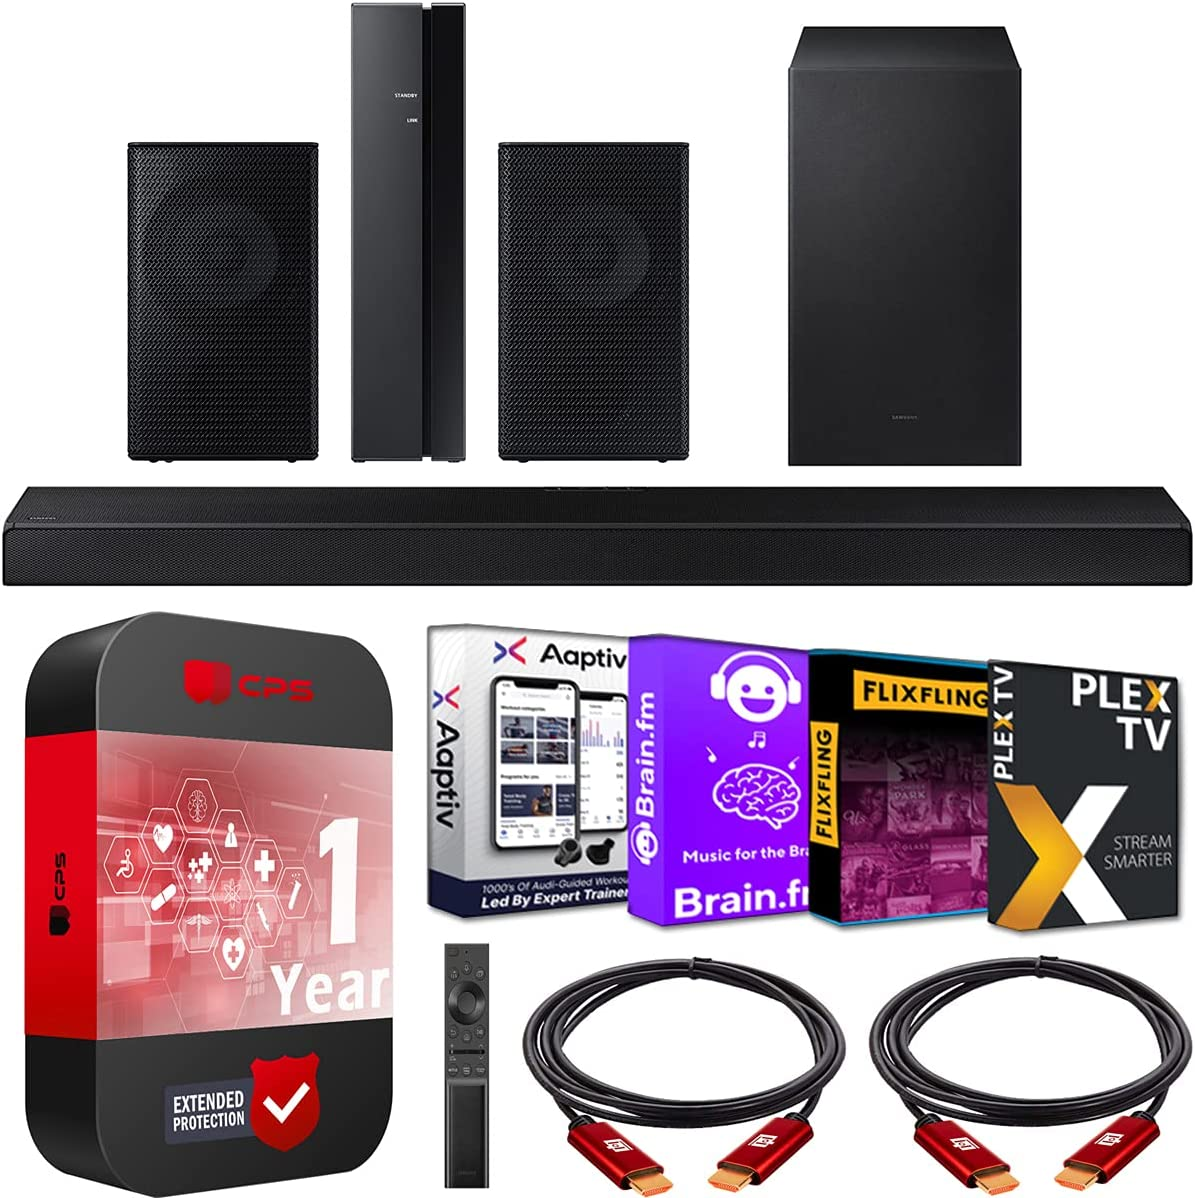 Samsung HW-A650 5.1ch Surround Sound Wireless Home Theater Bundle 3.1ch Dolby Digital 5.1 Soundbar 2021 + SWA-9100S 2ch Rear Speaker Kit + Subwoofer + Extended Coverage + 2 Deco Gear HDMI Cables